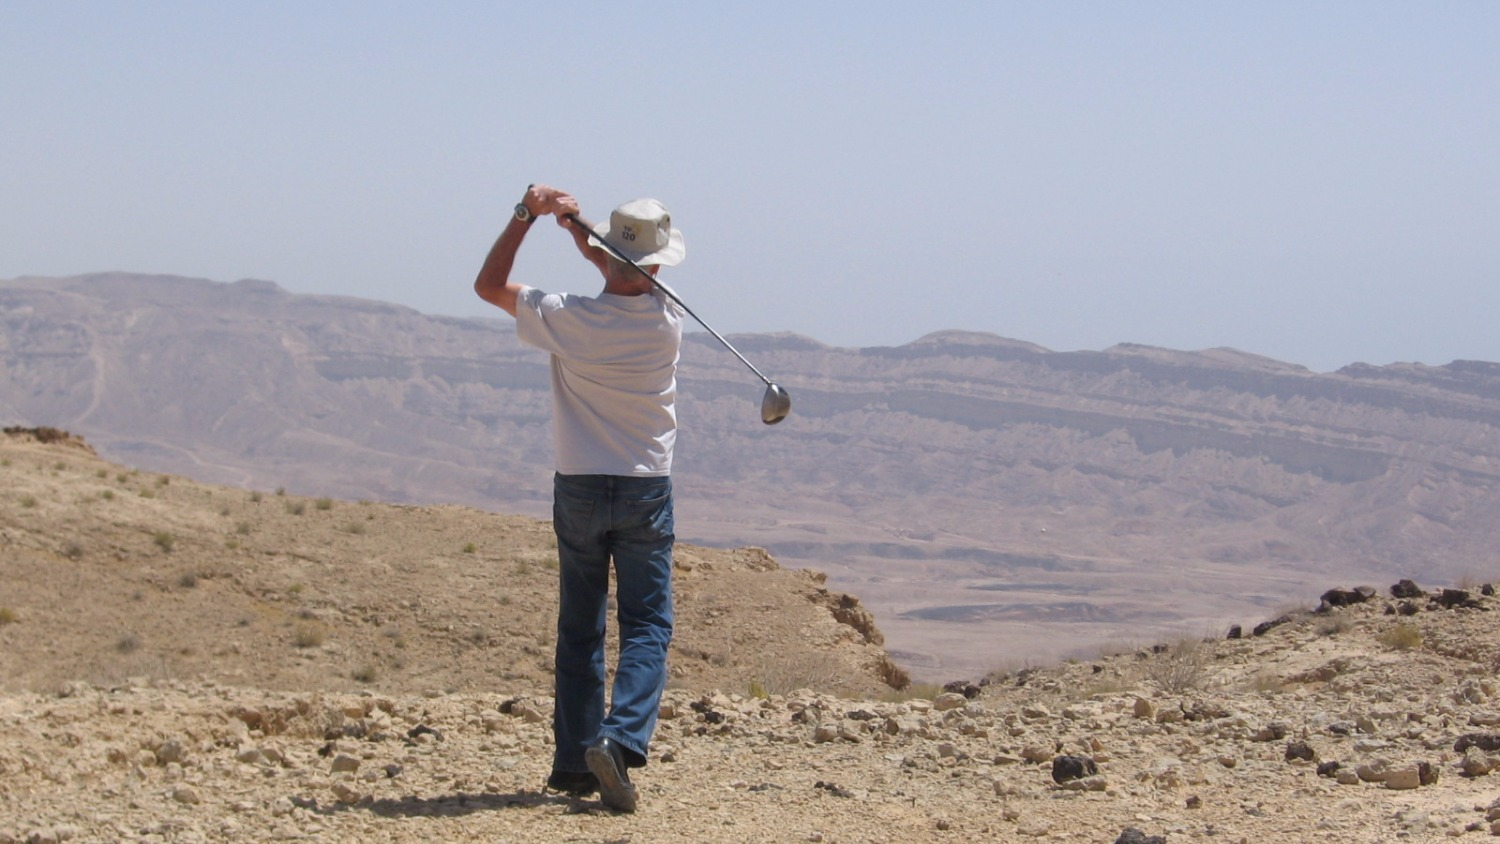 Enjoy the desert in Mitzpe Ramon